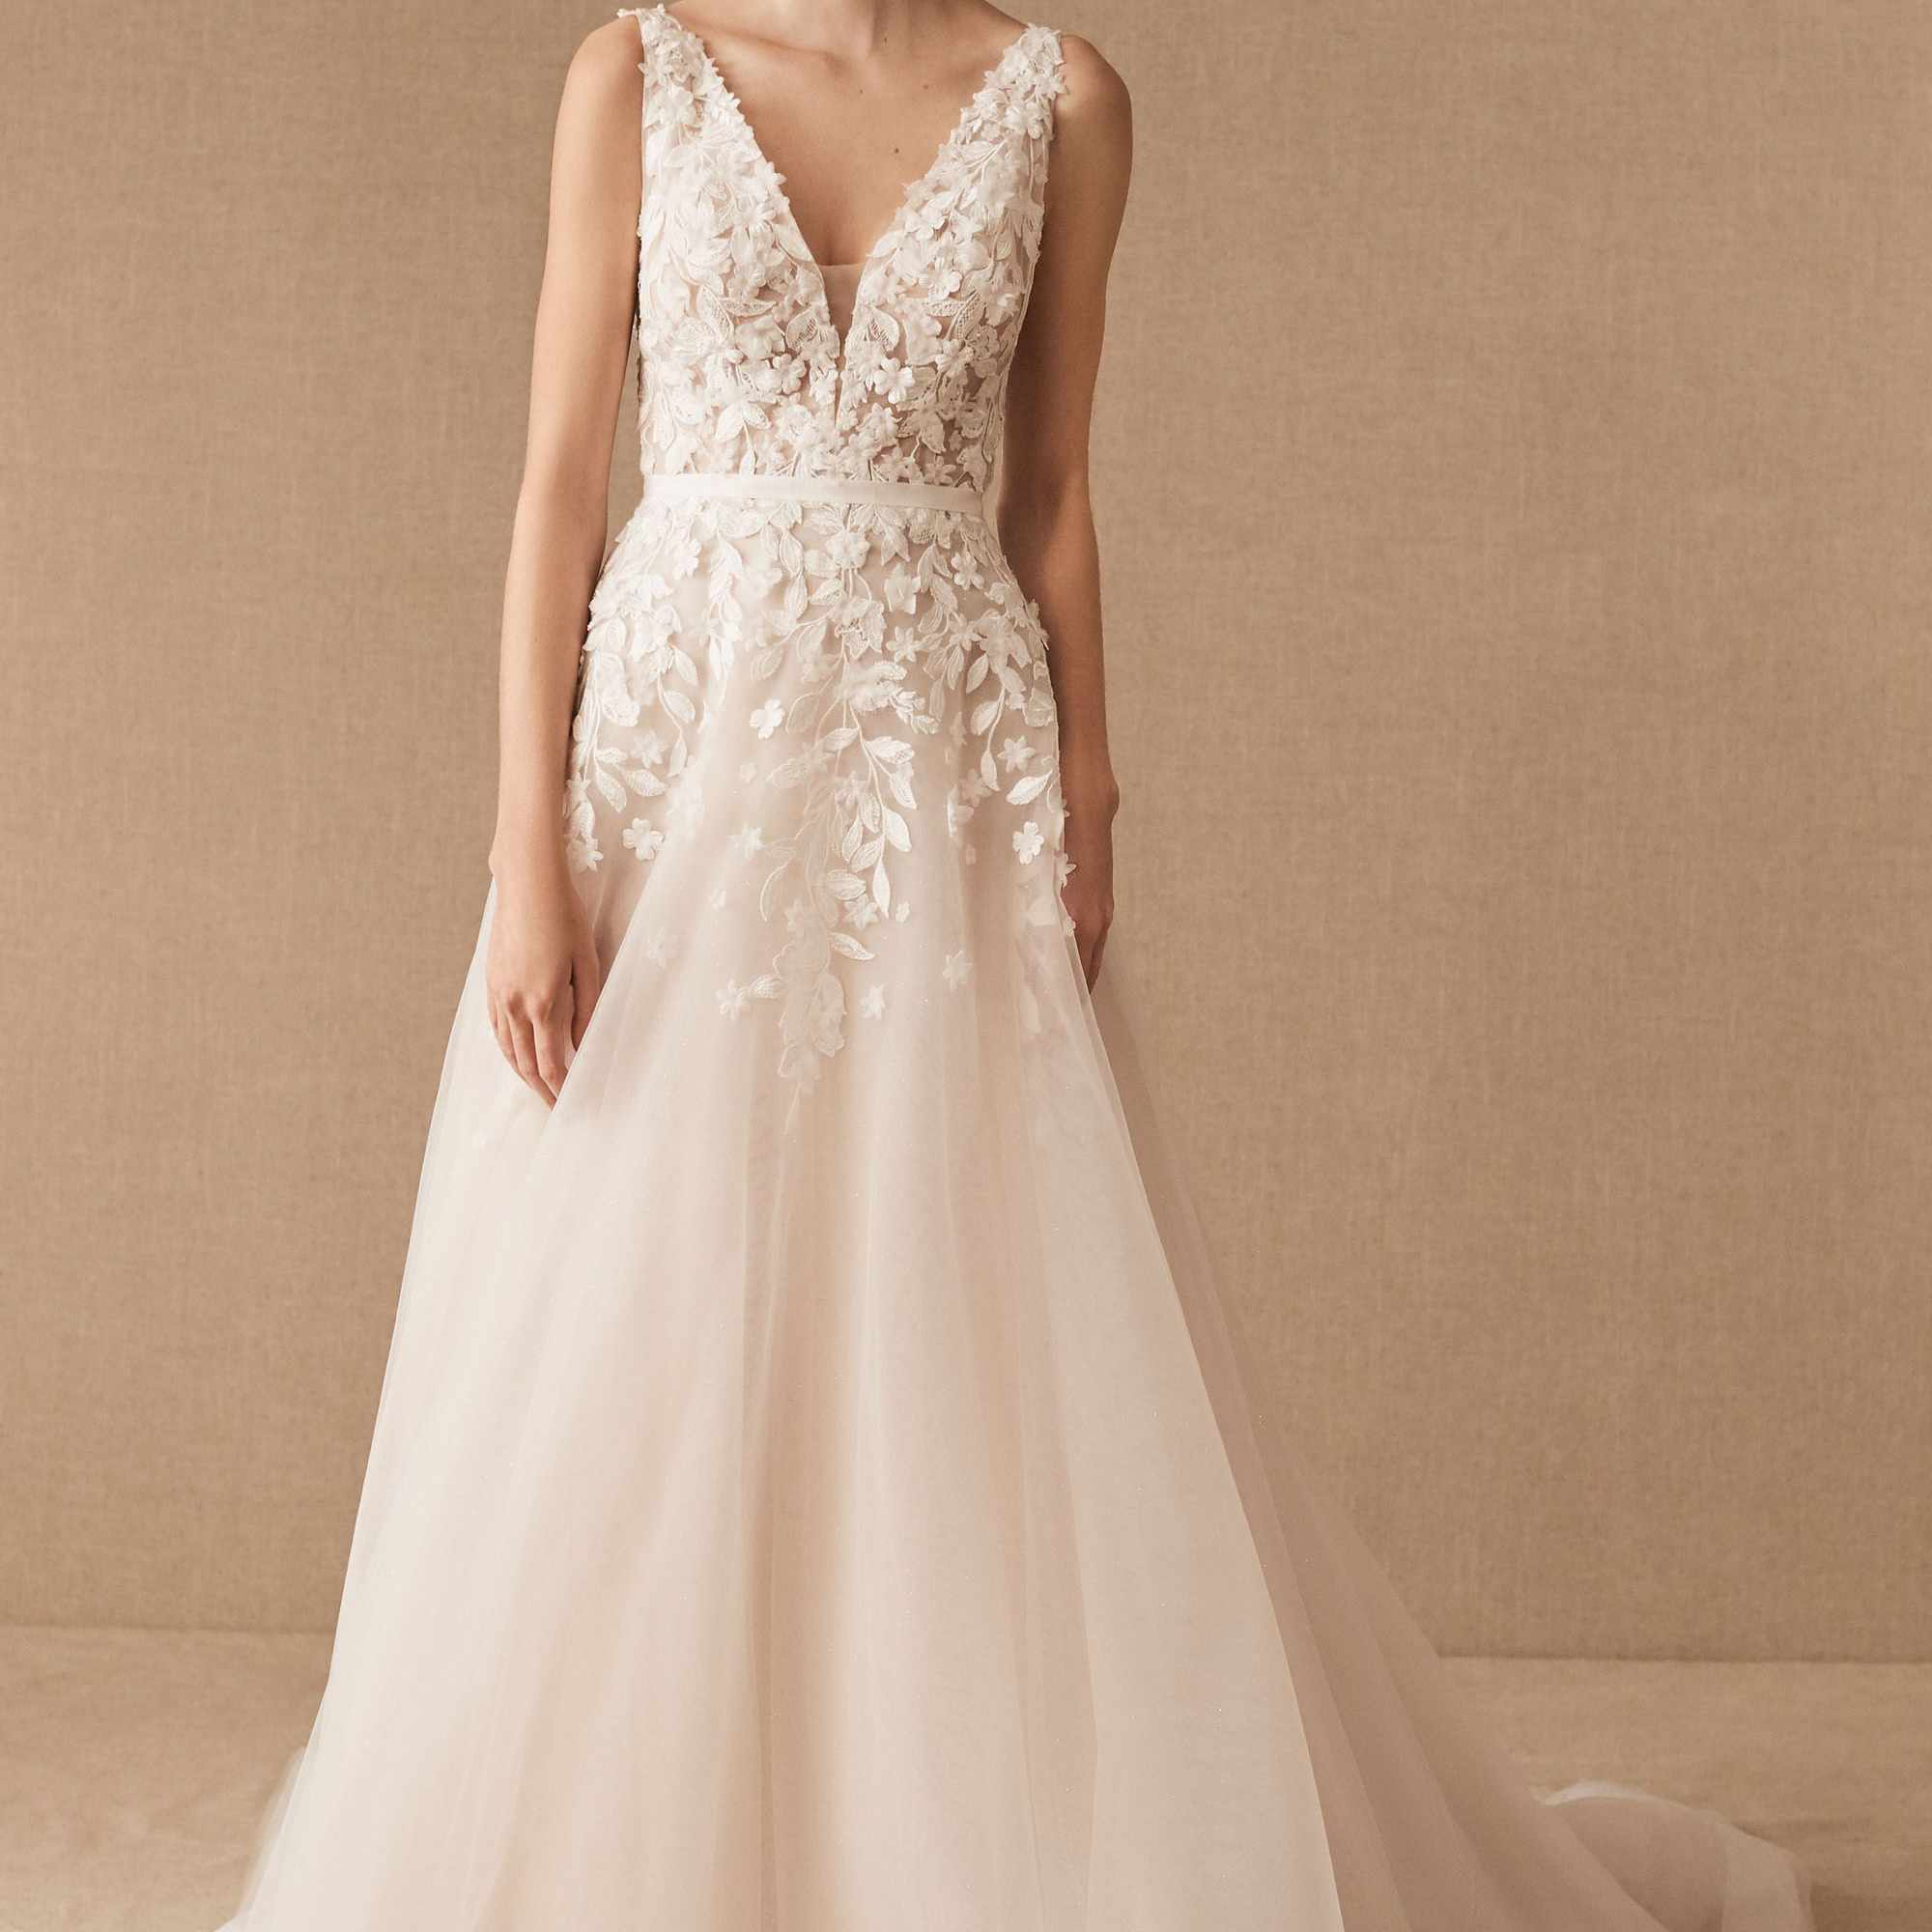 The 20 Best Places To Buy Wedding Dresses Online Of 2020